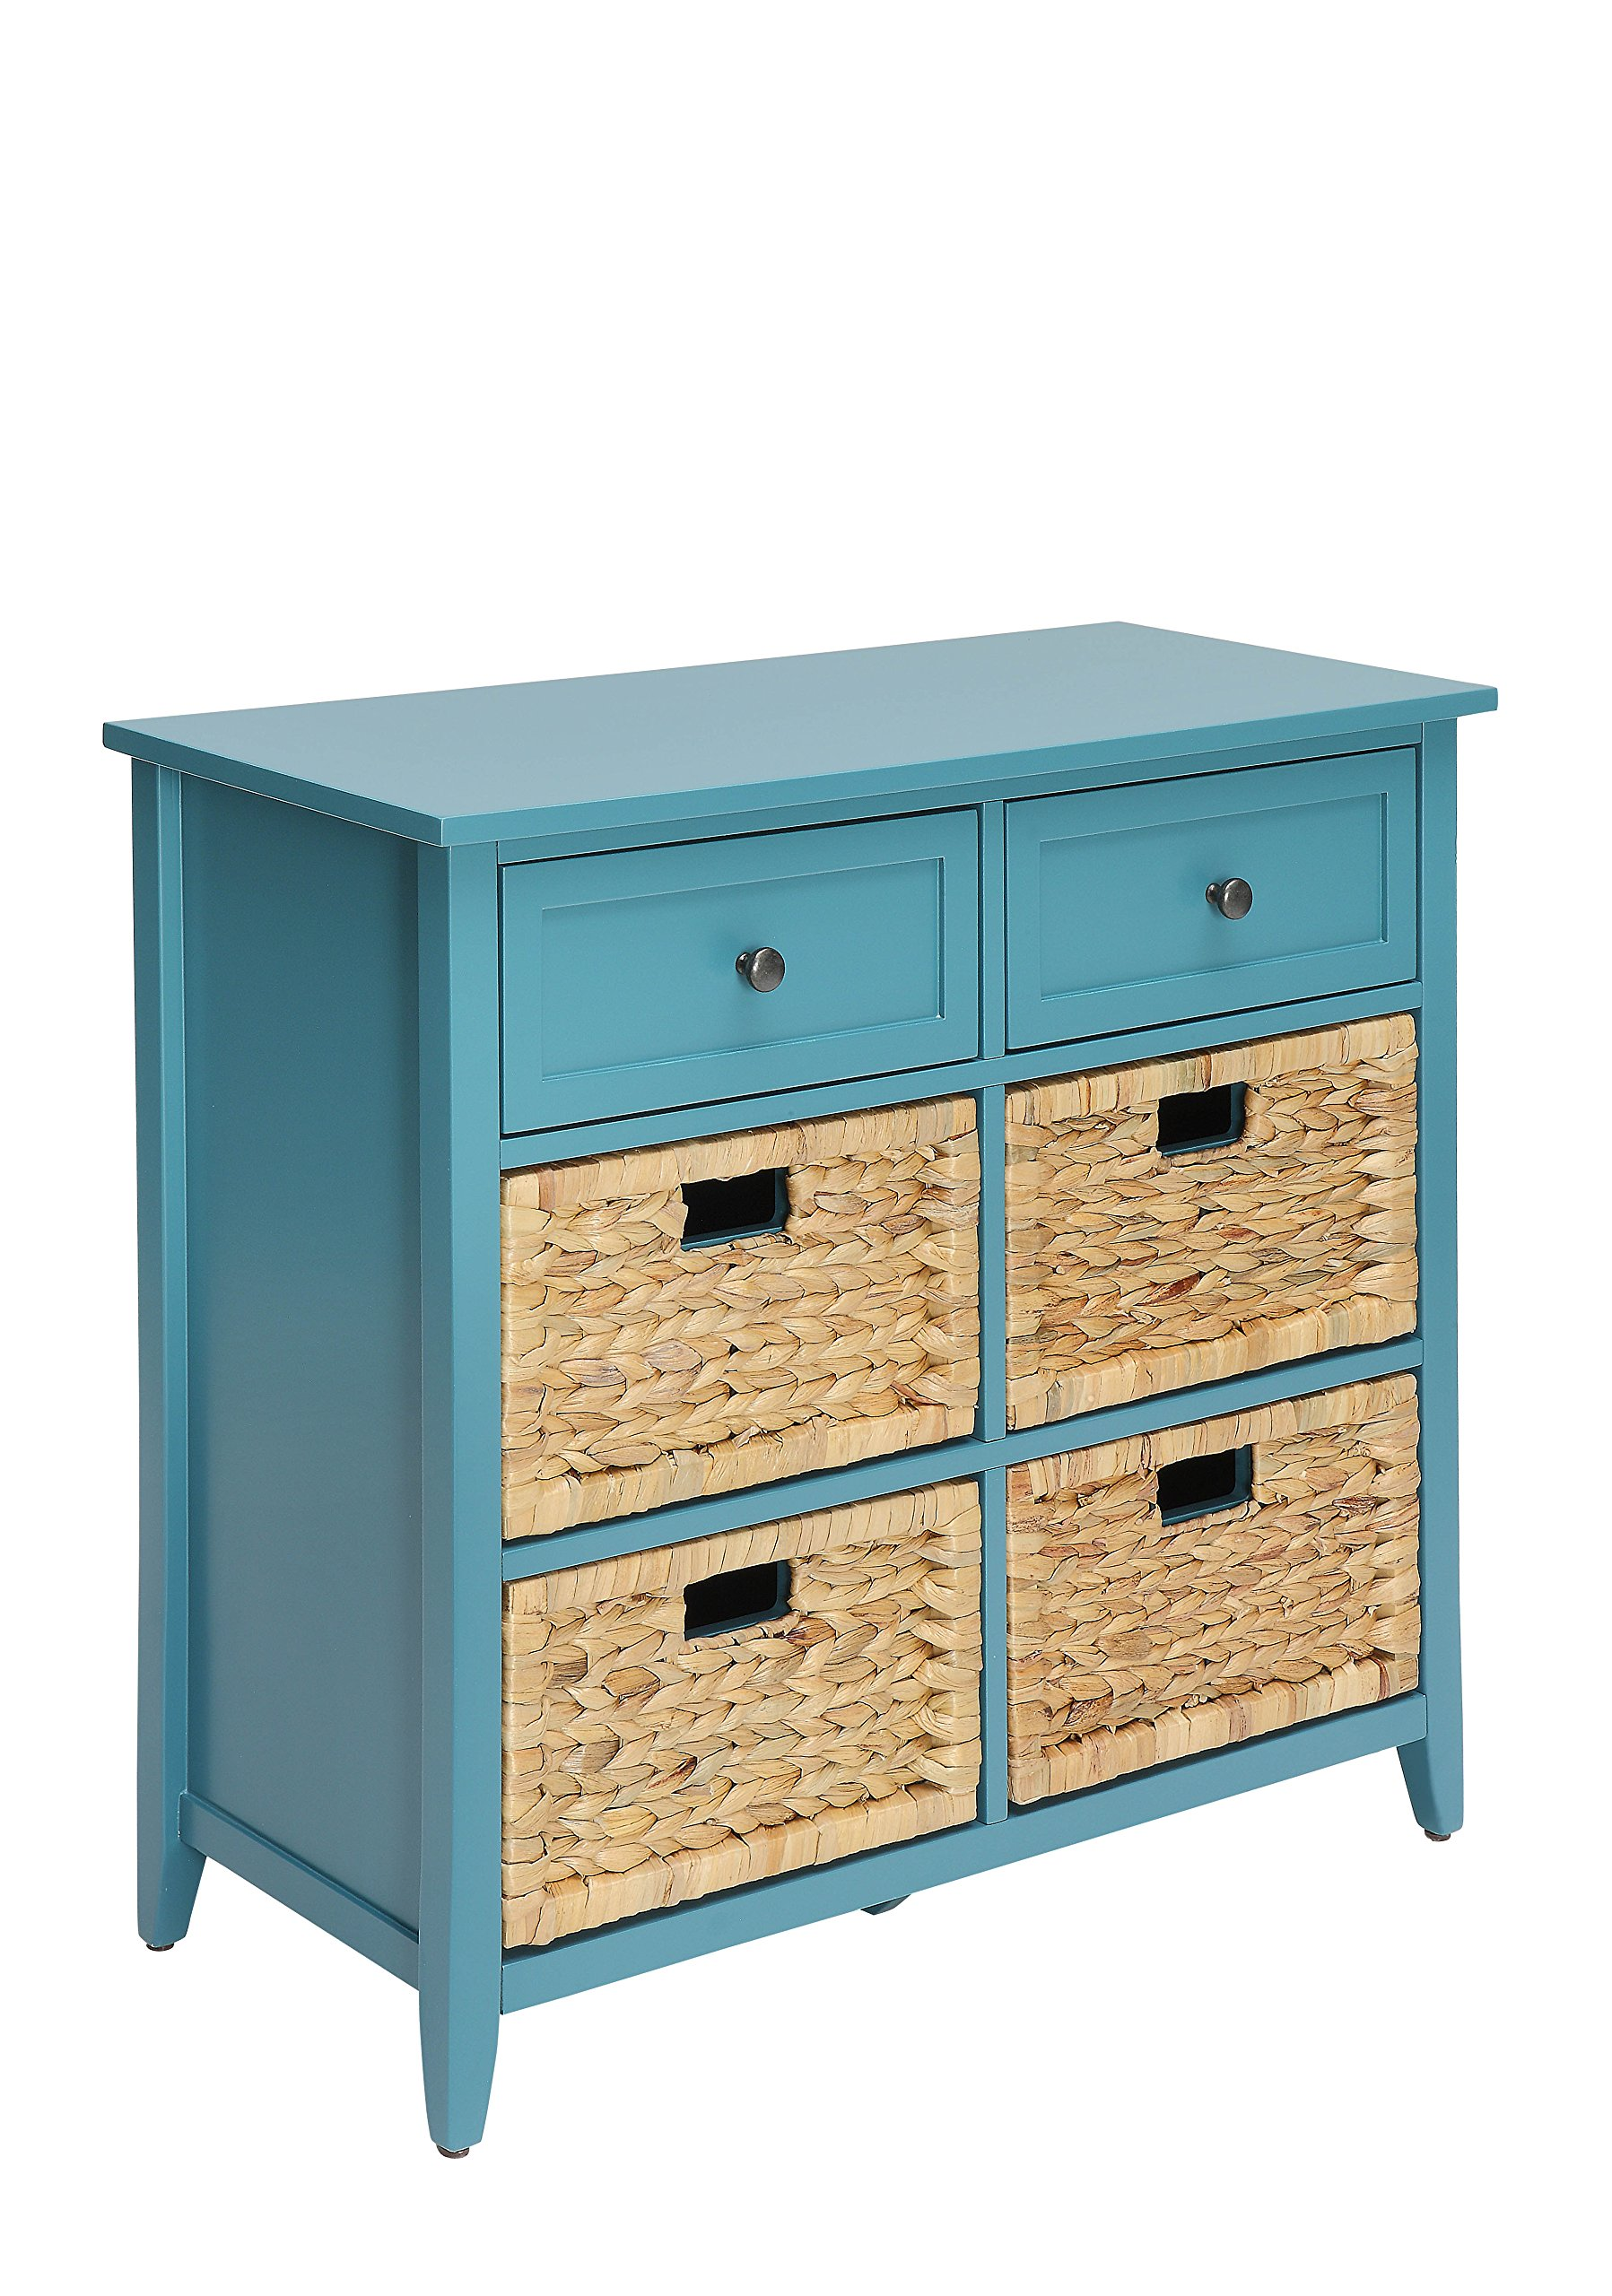 ACME Flavius Console Table - - Teal - Rectangular Chest The product contains 6 drawers Wooden frame - dressers-bedroom-furniture, bedroom-furniture, bedroom - 91xw woF0gL -